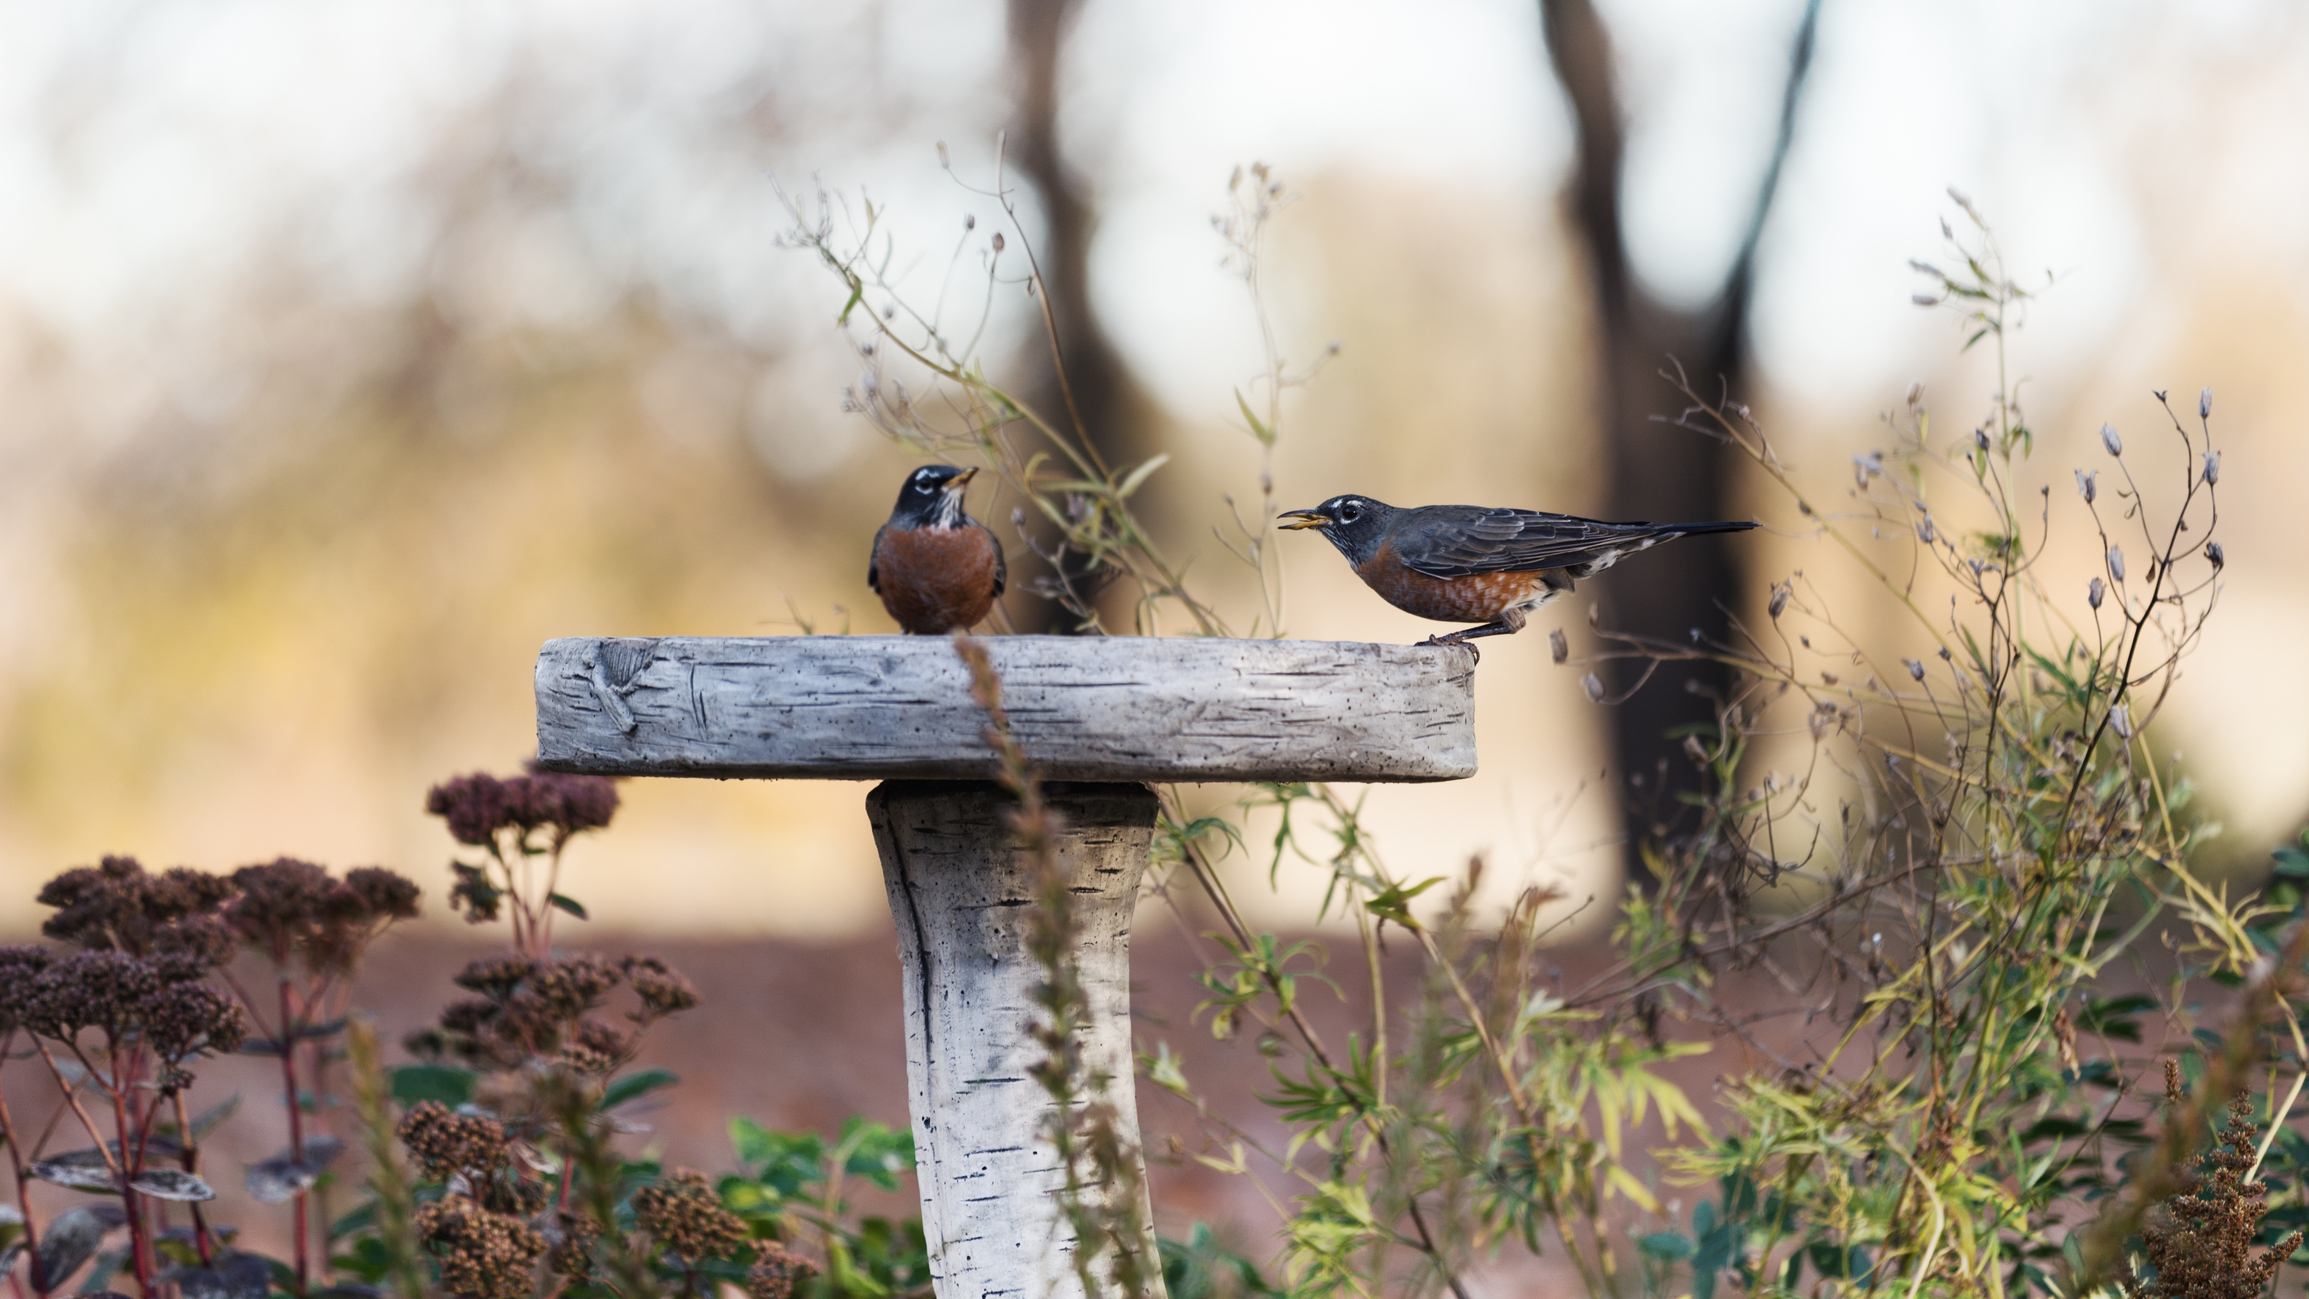 Caring for the Birds